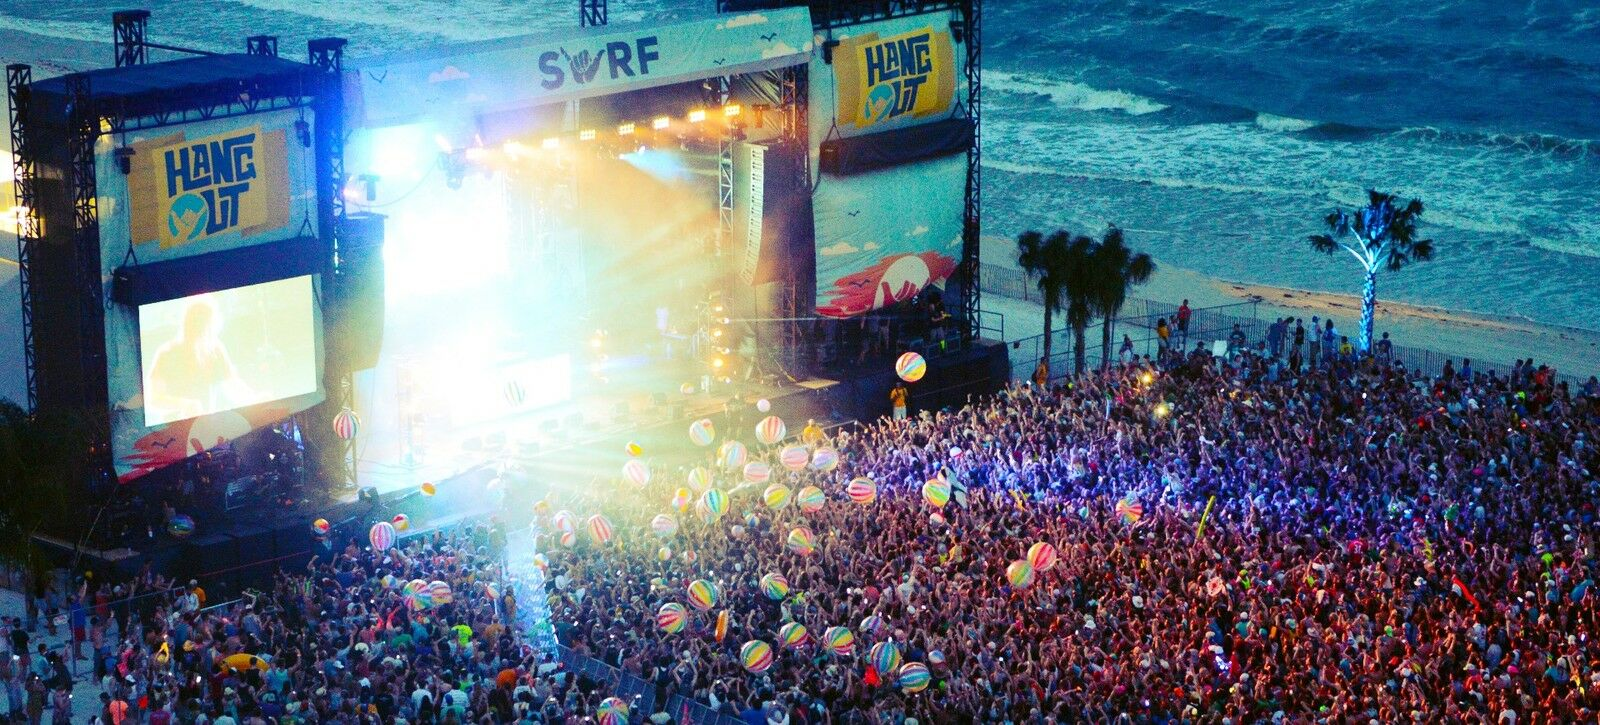 Hangout Music Festival 3 Day Pass Tickets (May 18-20)